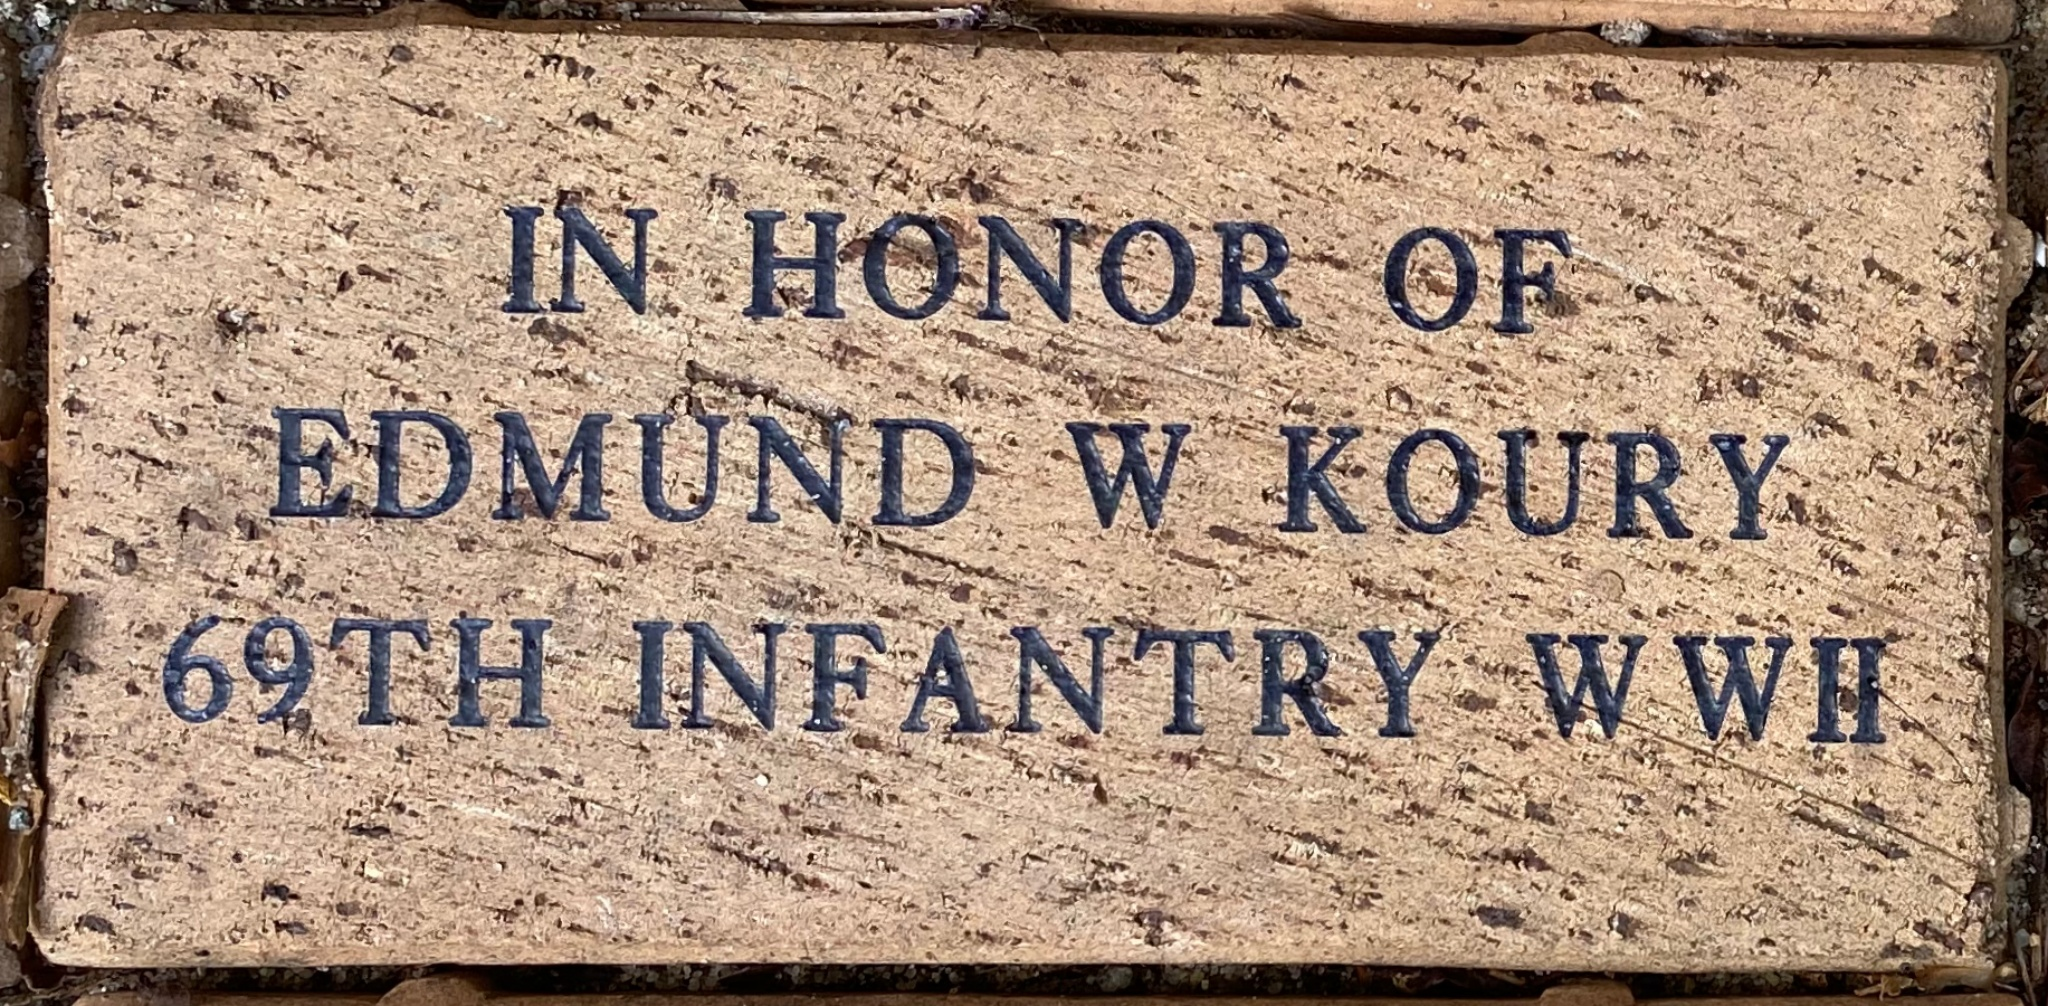 IN HONOR OF  EDMUND W KOURY 69TH INFANTRY WWII